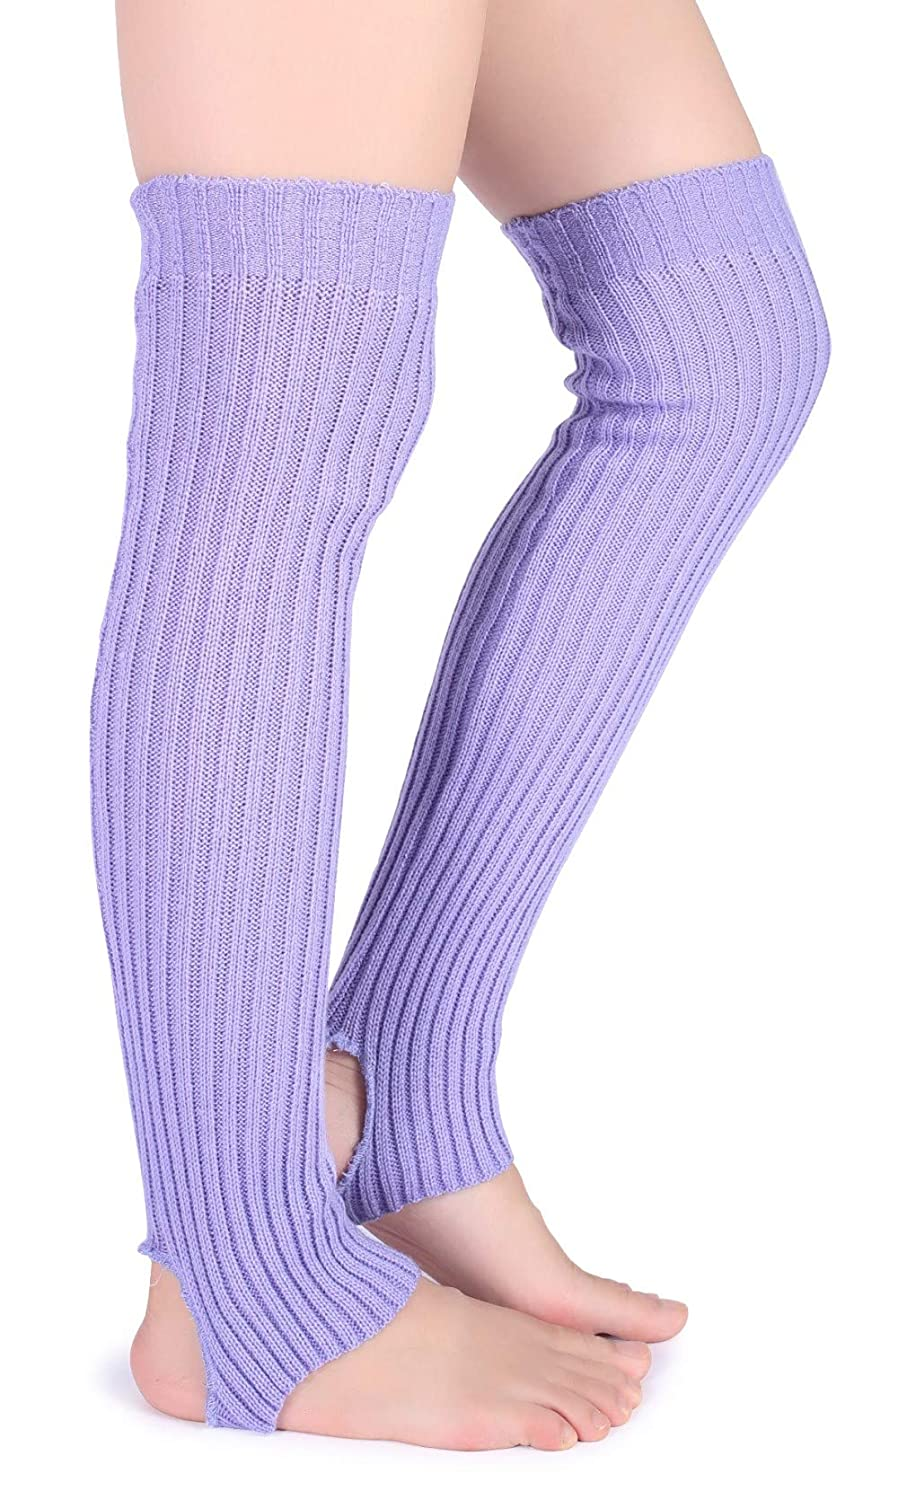 Eleray Women's Winter Soft Over Knee High Cable Footless Socks Knit Leg Warmers